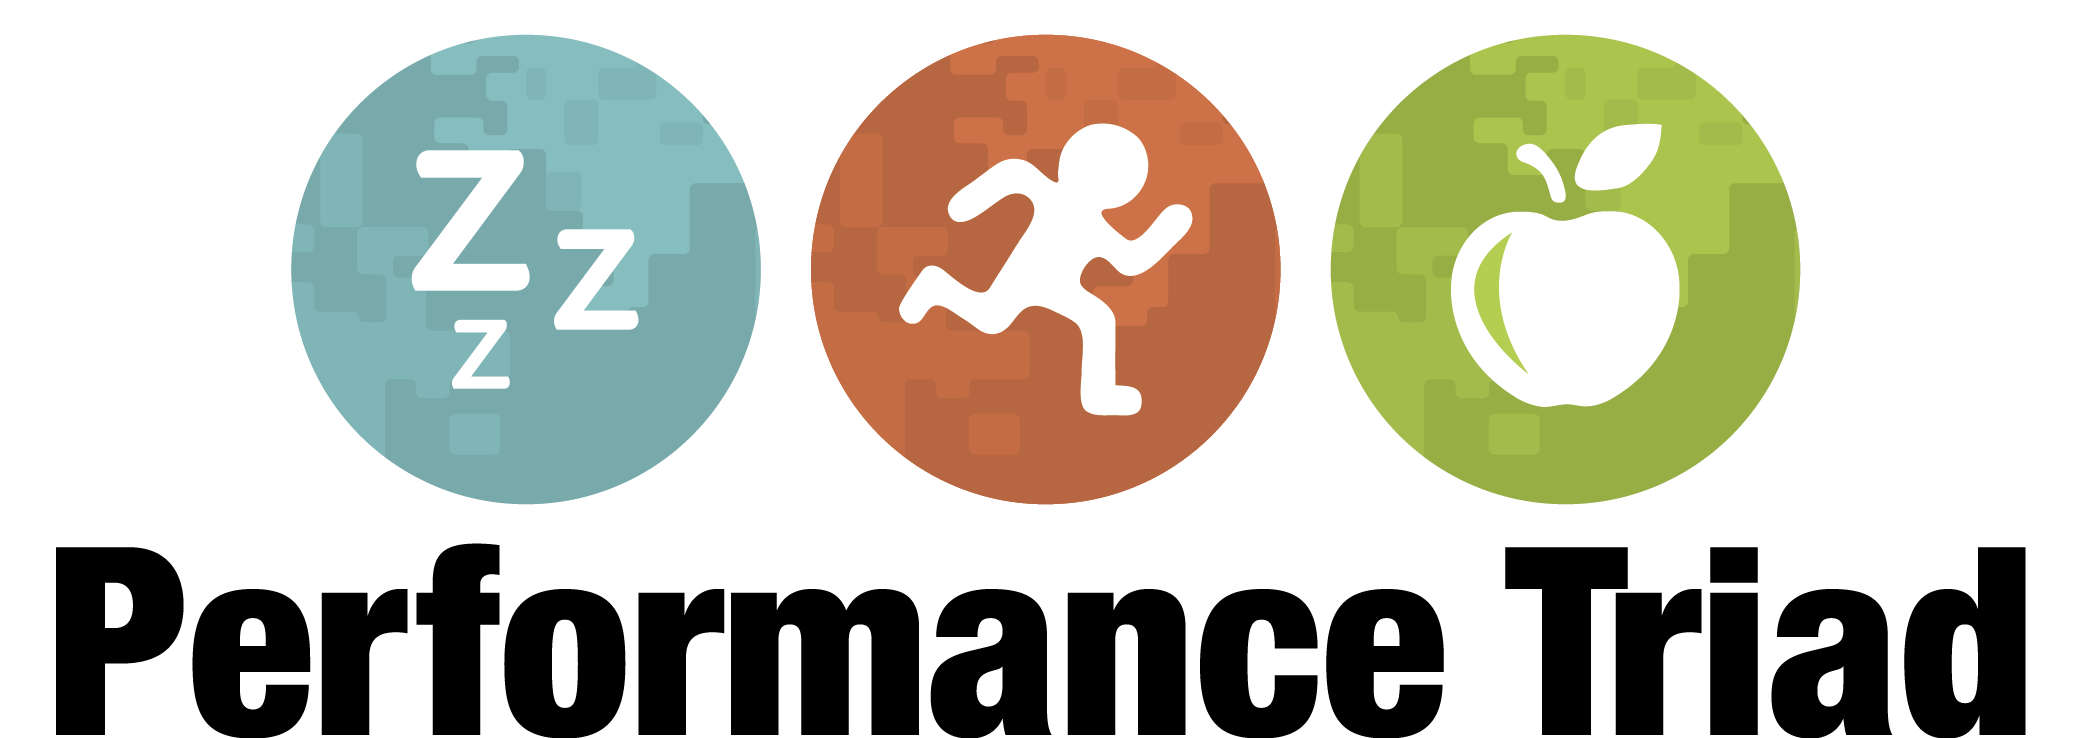 the performance triad To give you a performance edge, check out the army's performance triad it has what you need to improve your sleep, activity, and nutrition.